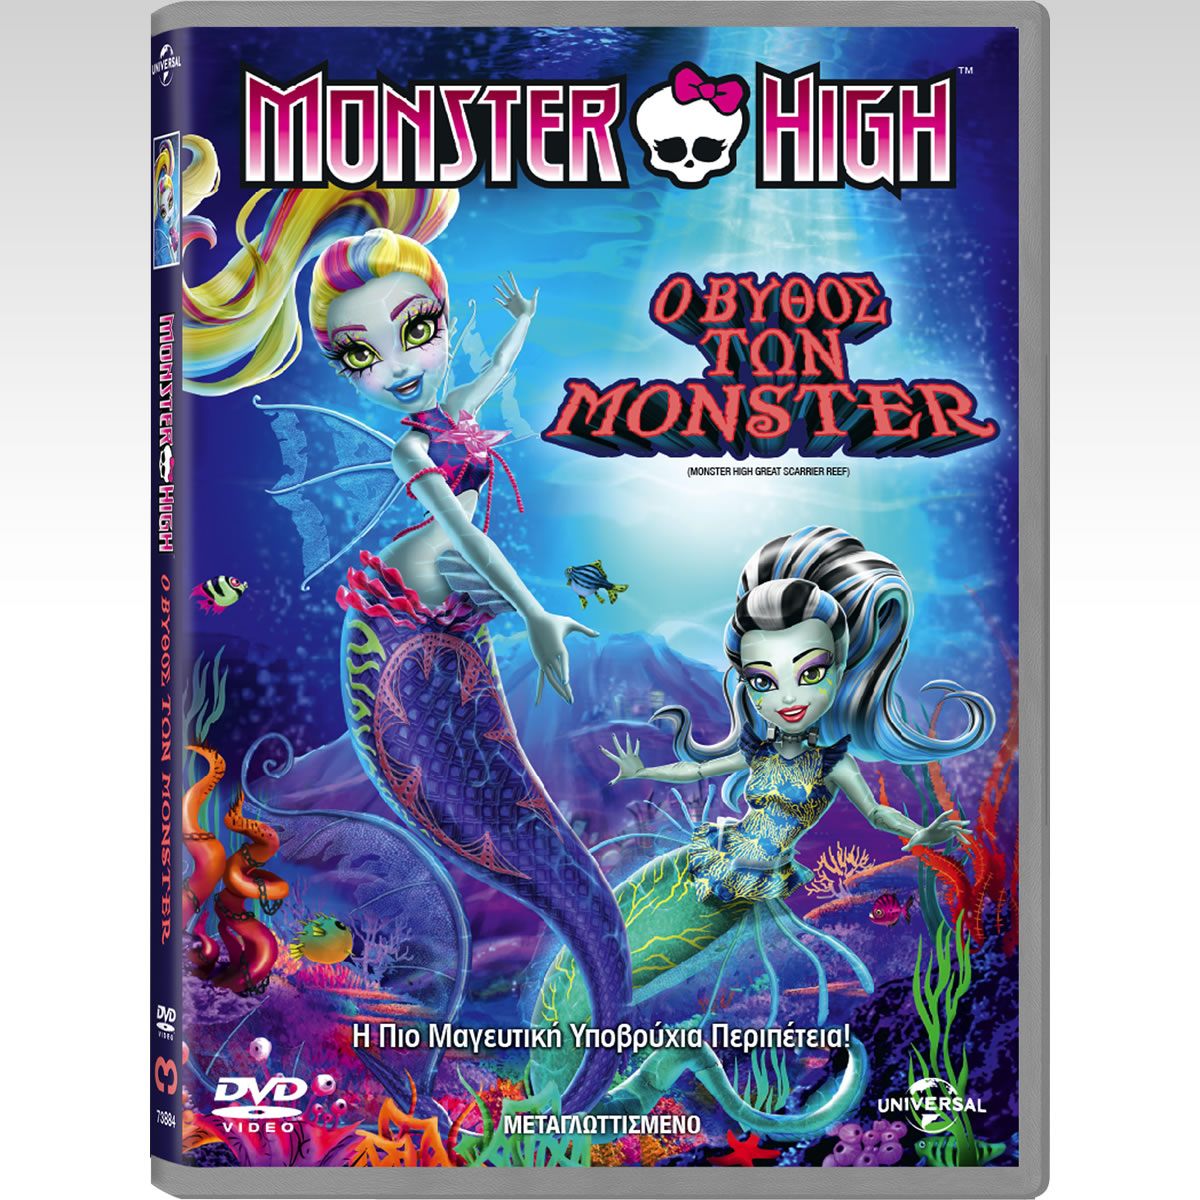 MONSTER HIGH: GREAT SCARRIER REEF - MONSTER HIGH: Ο ΒΥΘΟΣ ΤΩΝ MONSTER (DVD) & ΜΕΤΑΓΛΩΤΤΙΣΜΕΝΟ